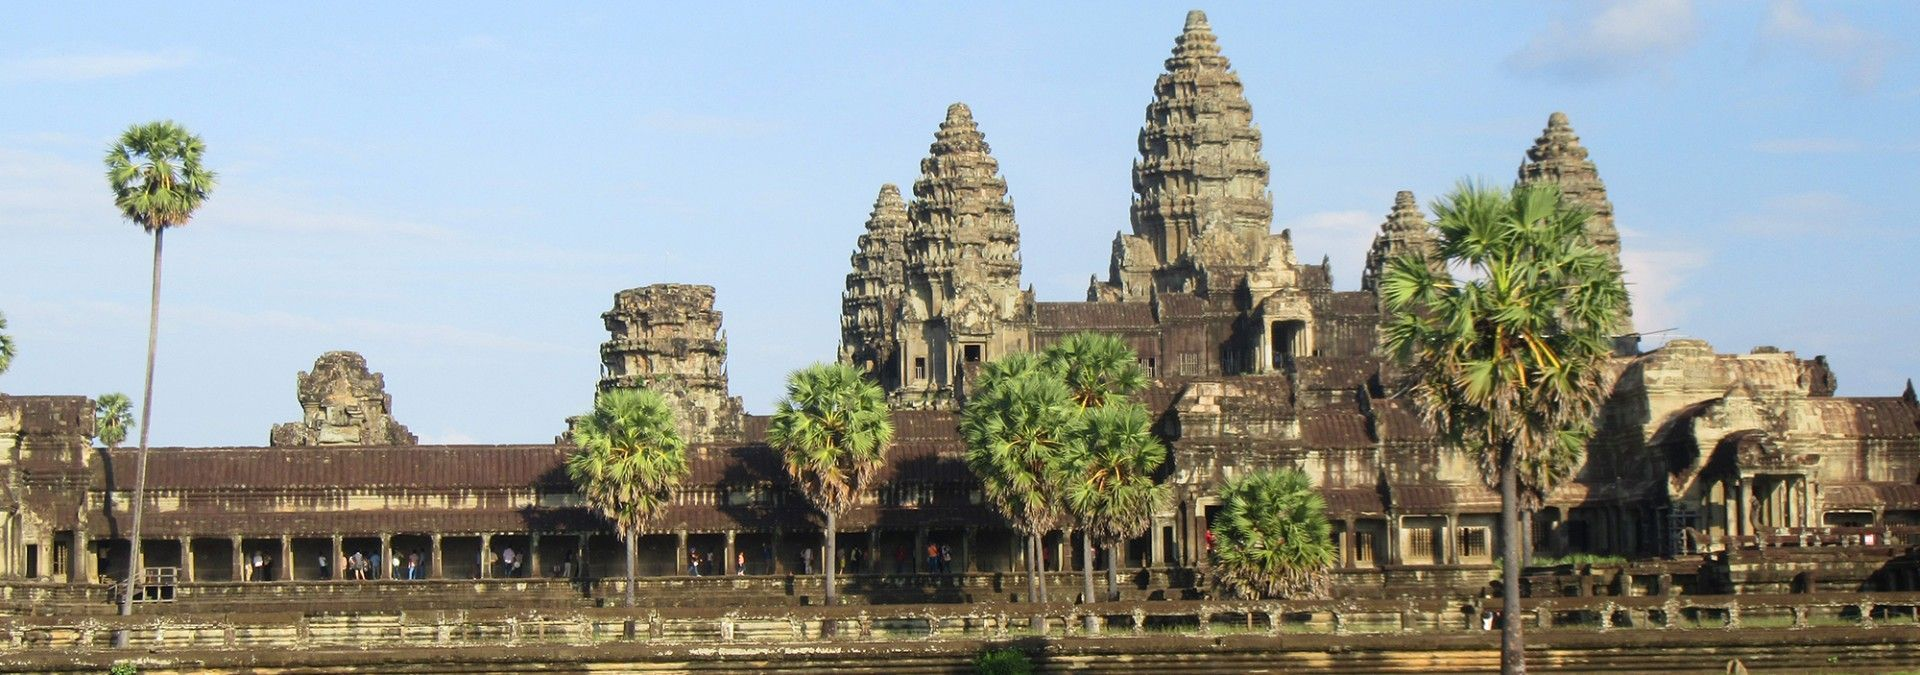 Temple_of_Angkor_Wat.jpg